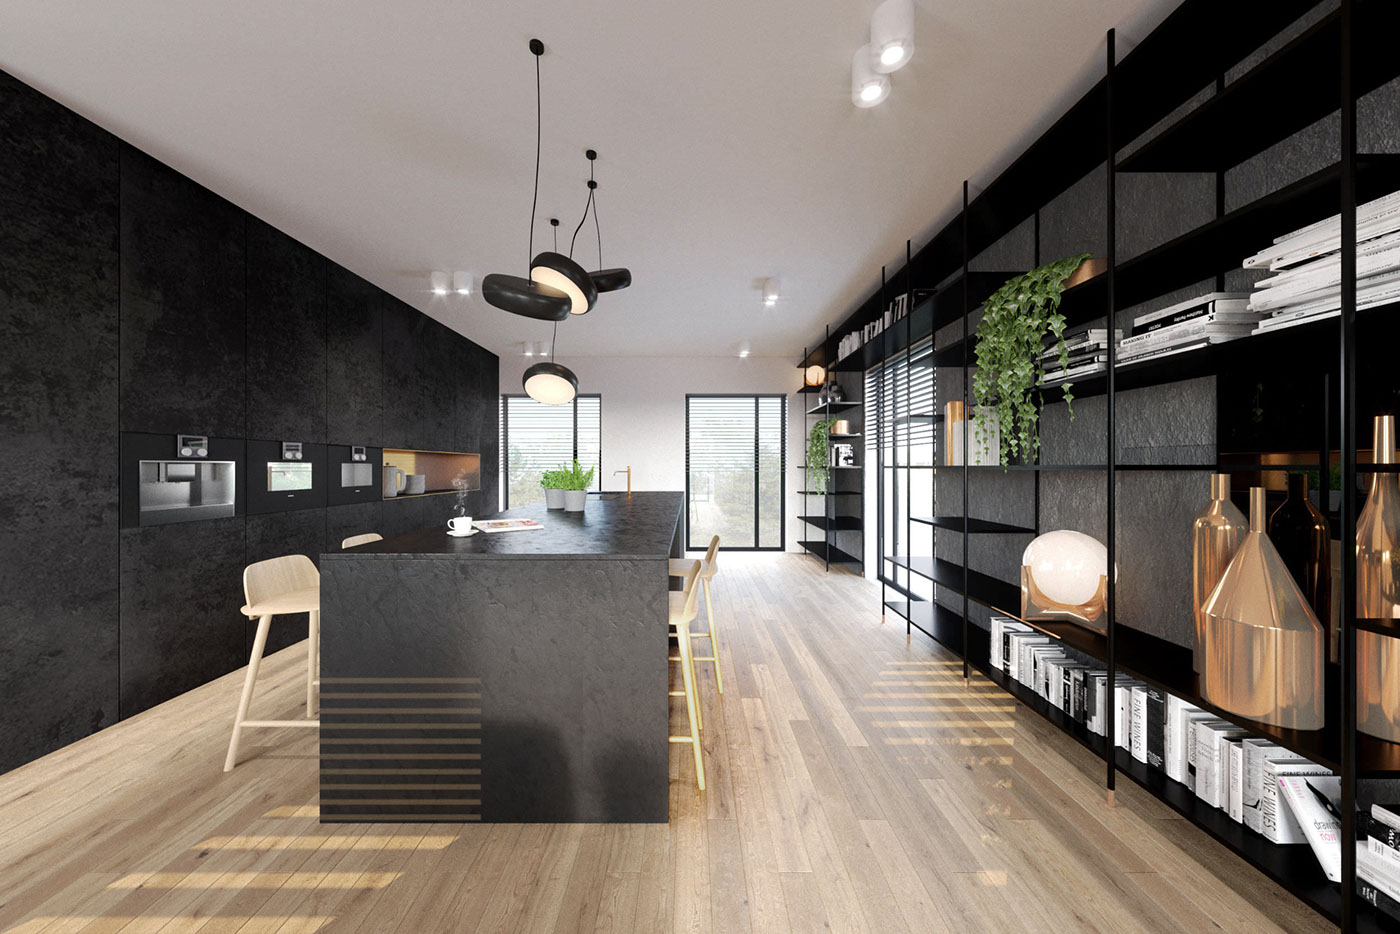 ... Perfect Location And Area, We Had To Make Significant Changes In The  Form Of Shifting Walls To Completely Change The Functional Layout Of The  Apartment.